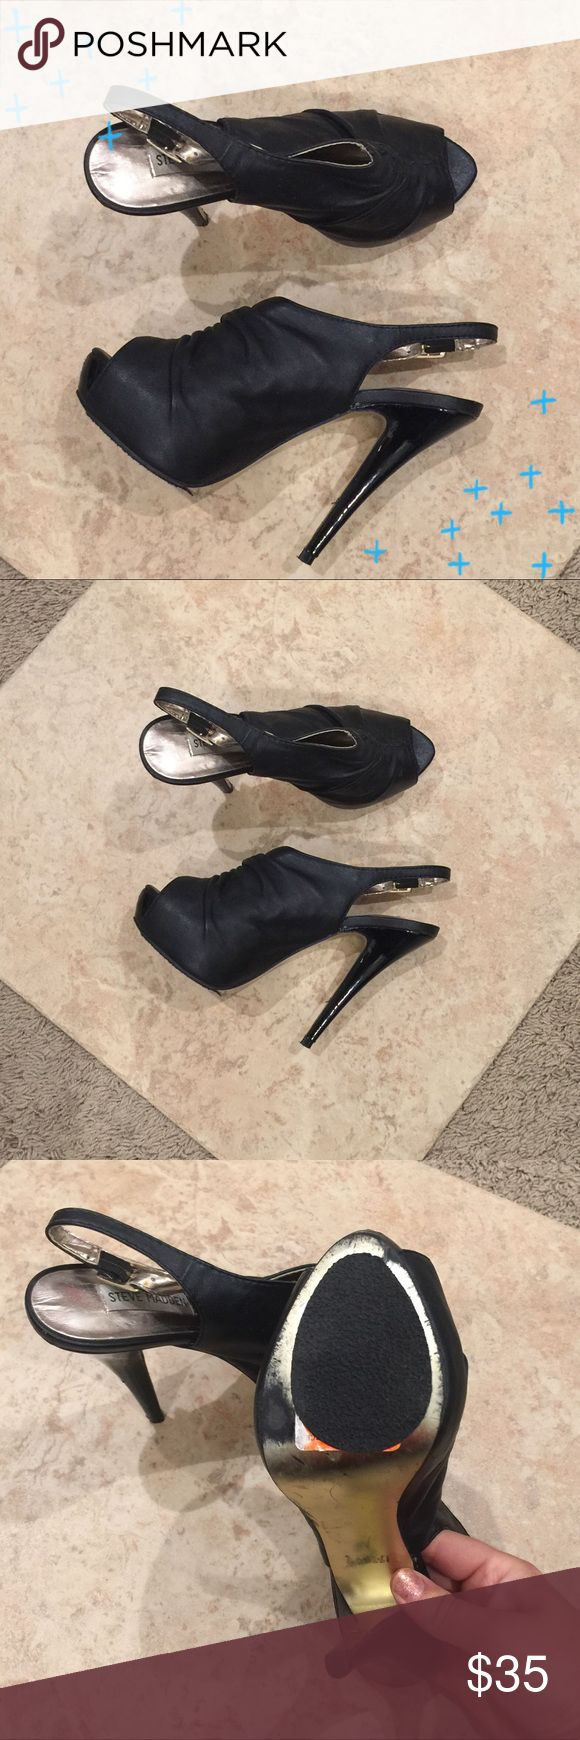 """Steve Madden sexy 'Daria' black heels Amazing Steve Madden 'Daria' heels in black. Worn a handle of times in Vegas- truly the perfect going out heel! No slip bottoms have been added to the bottom of the shoes, but they can be removed. Approx 5"""" heel with a 1"""" hidden platform at the toes. Open to offers, no trades. Steve Madden Shoes Heels"""